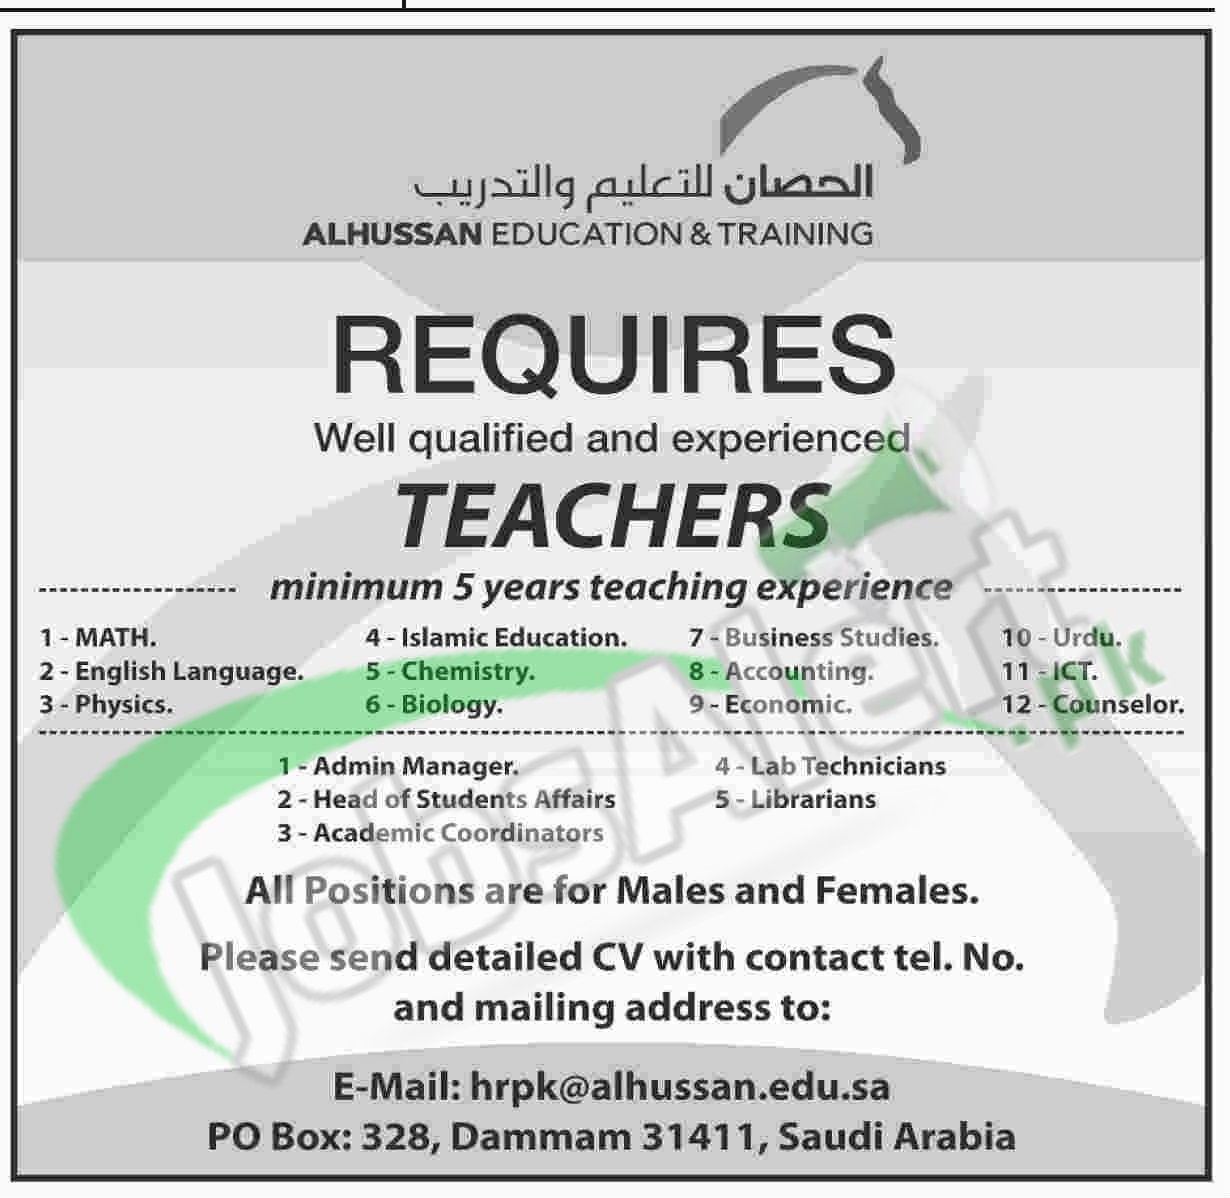 Al Hussan Education and Training